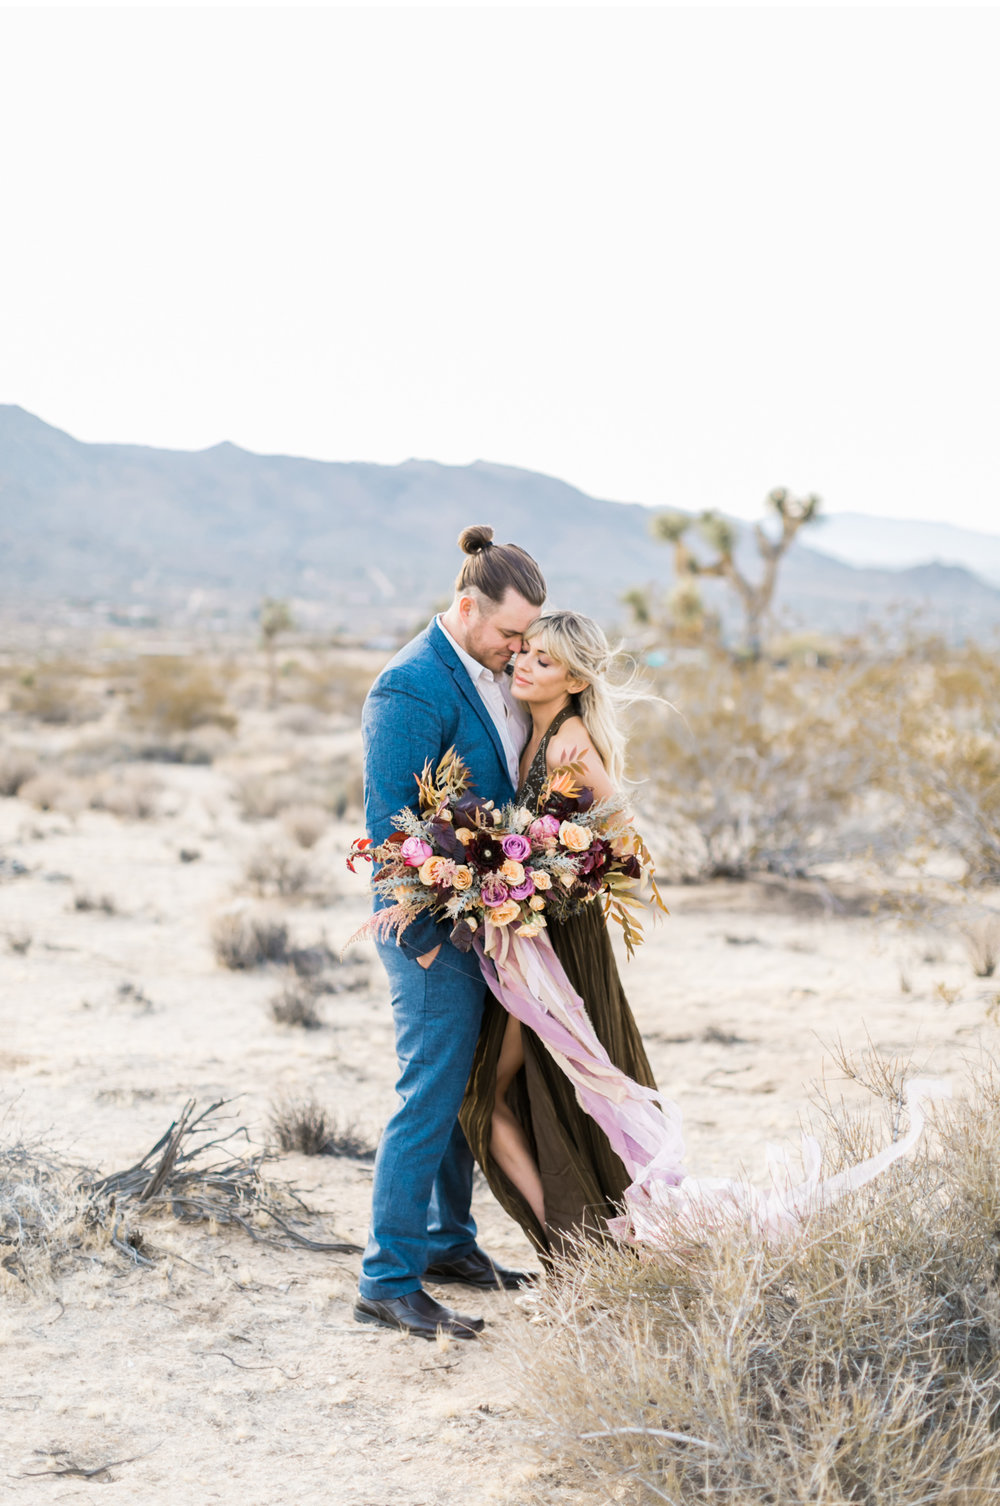 Joshua-Tree-Wedding-Natalie-Schutt-Photography-100-Layer-Cake_10.jpg